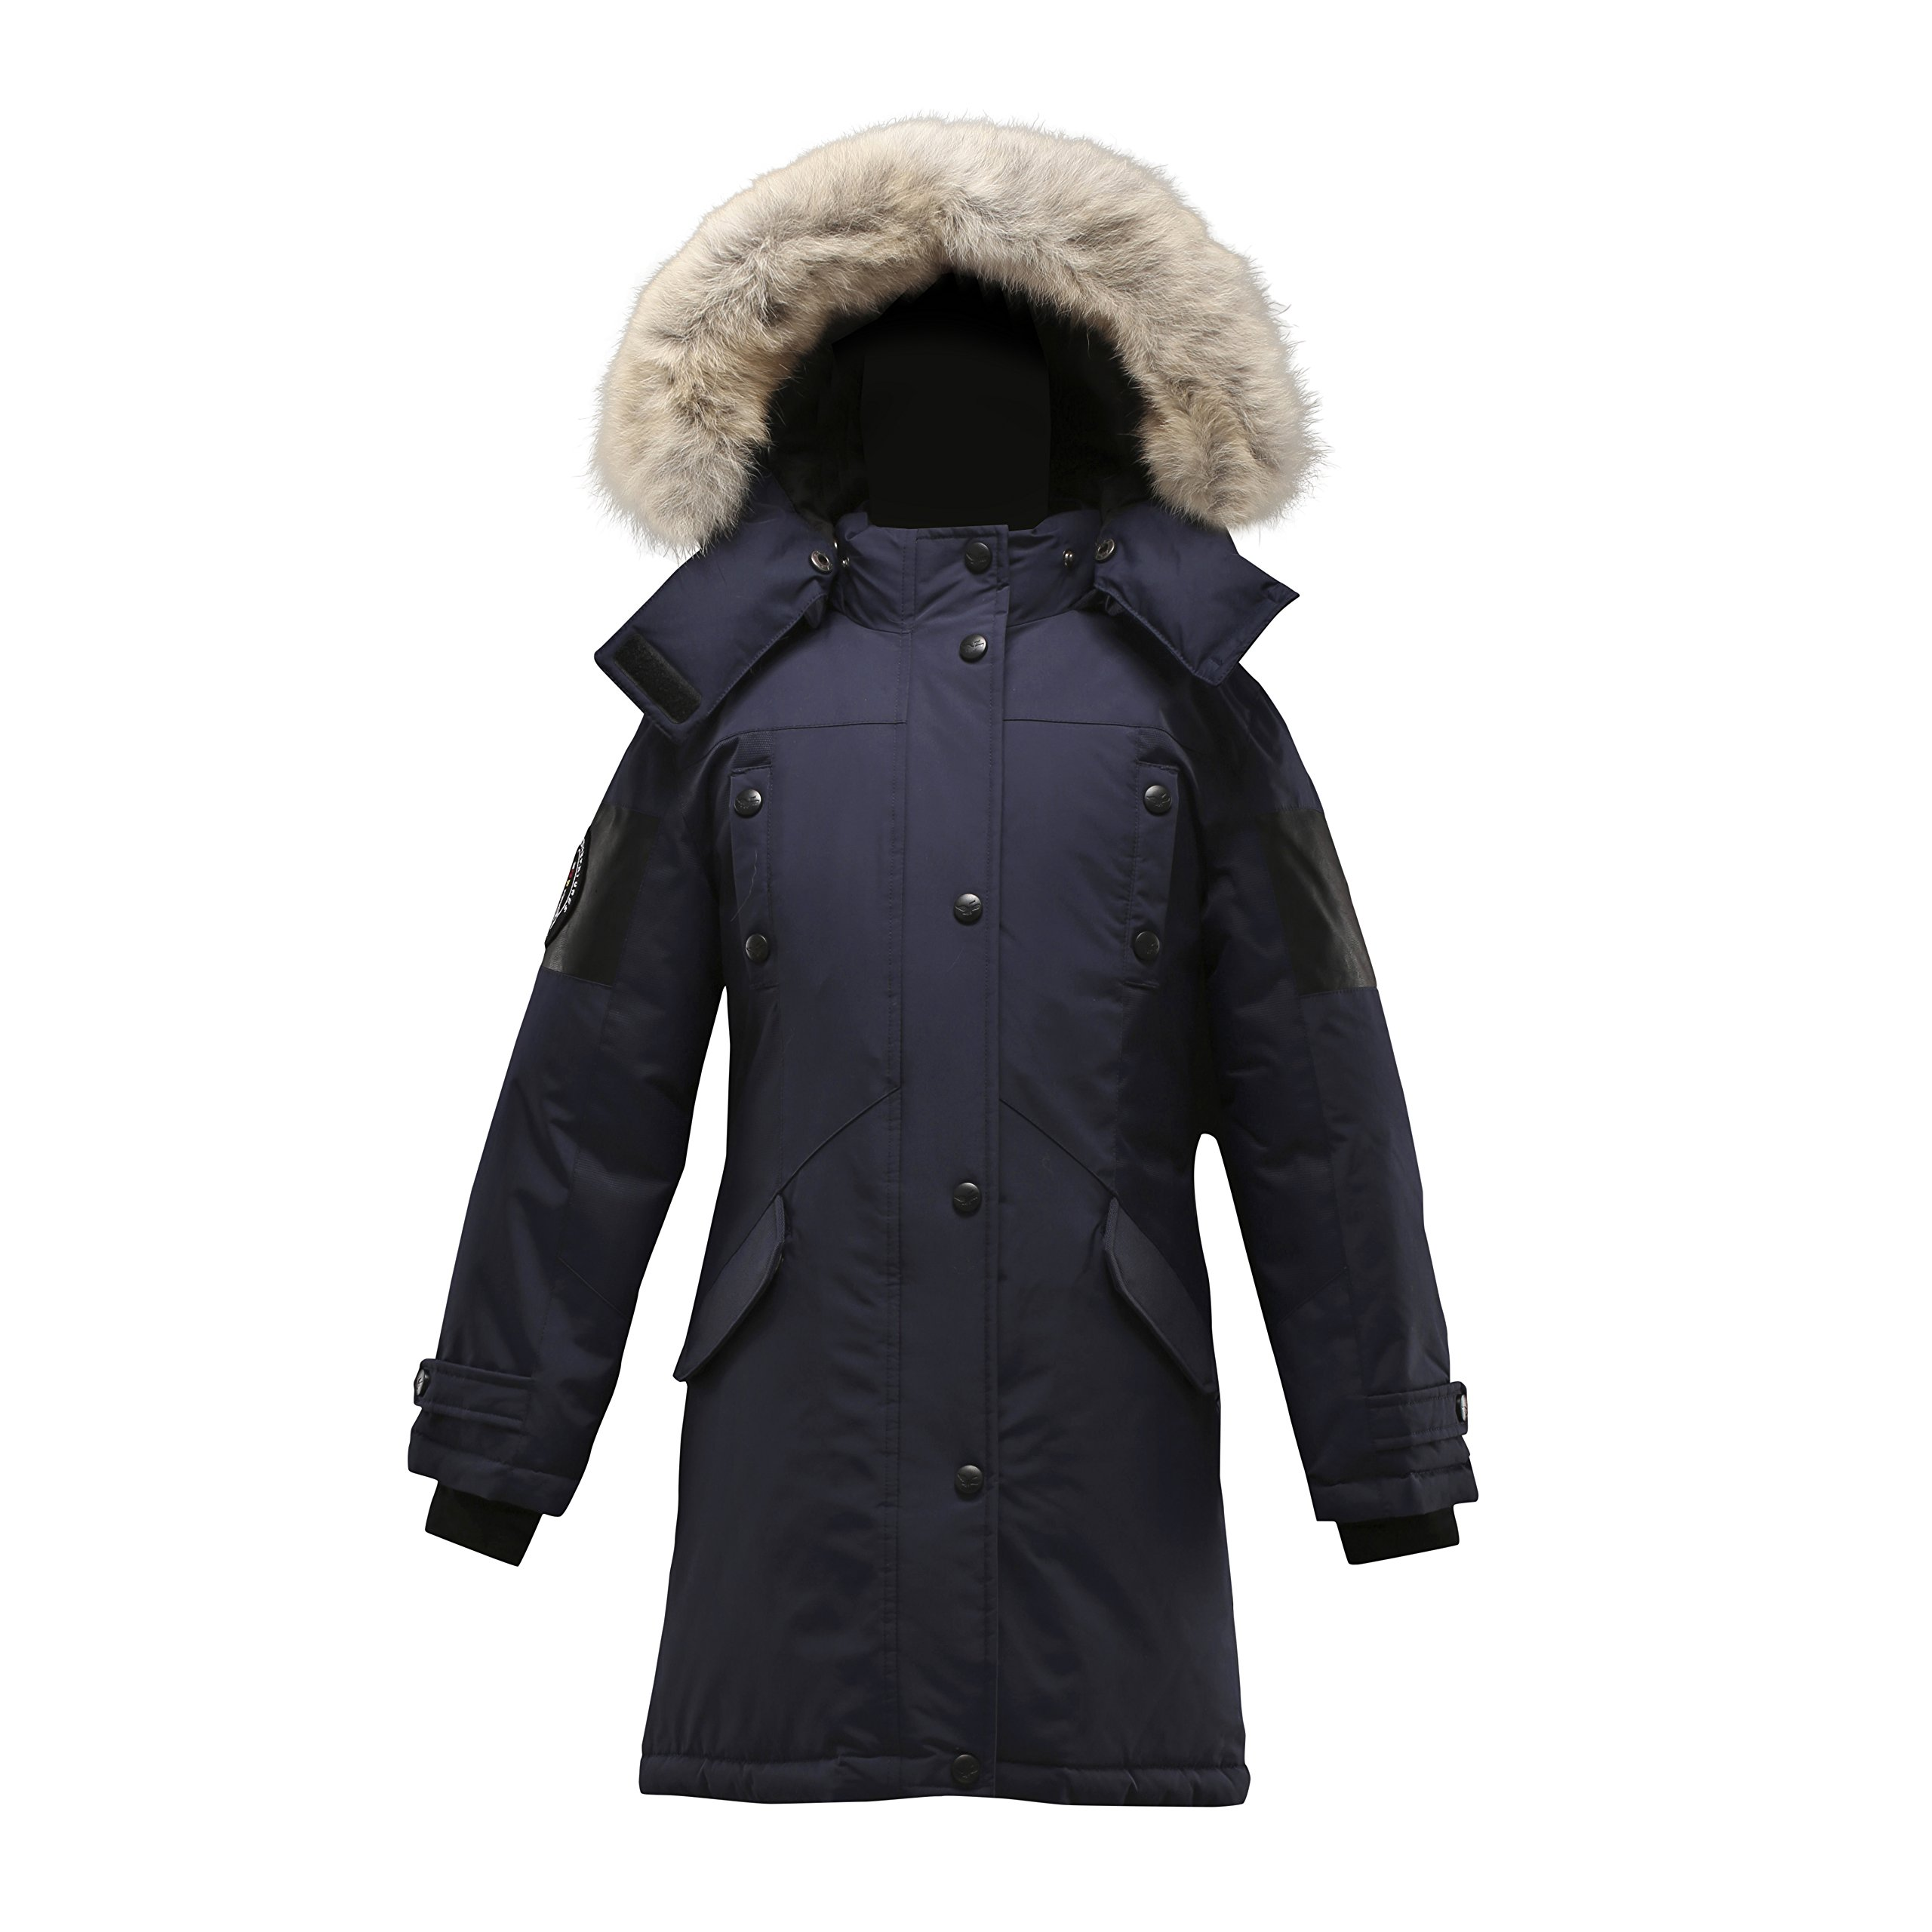 Triple F.A.T. Goose Embree Girls Down Jacket Parka with Real Coyote Fur (14, Navy)